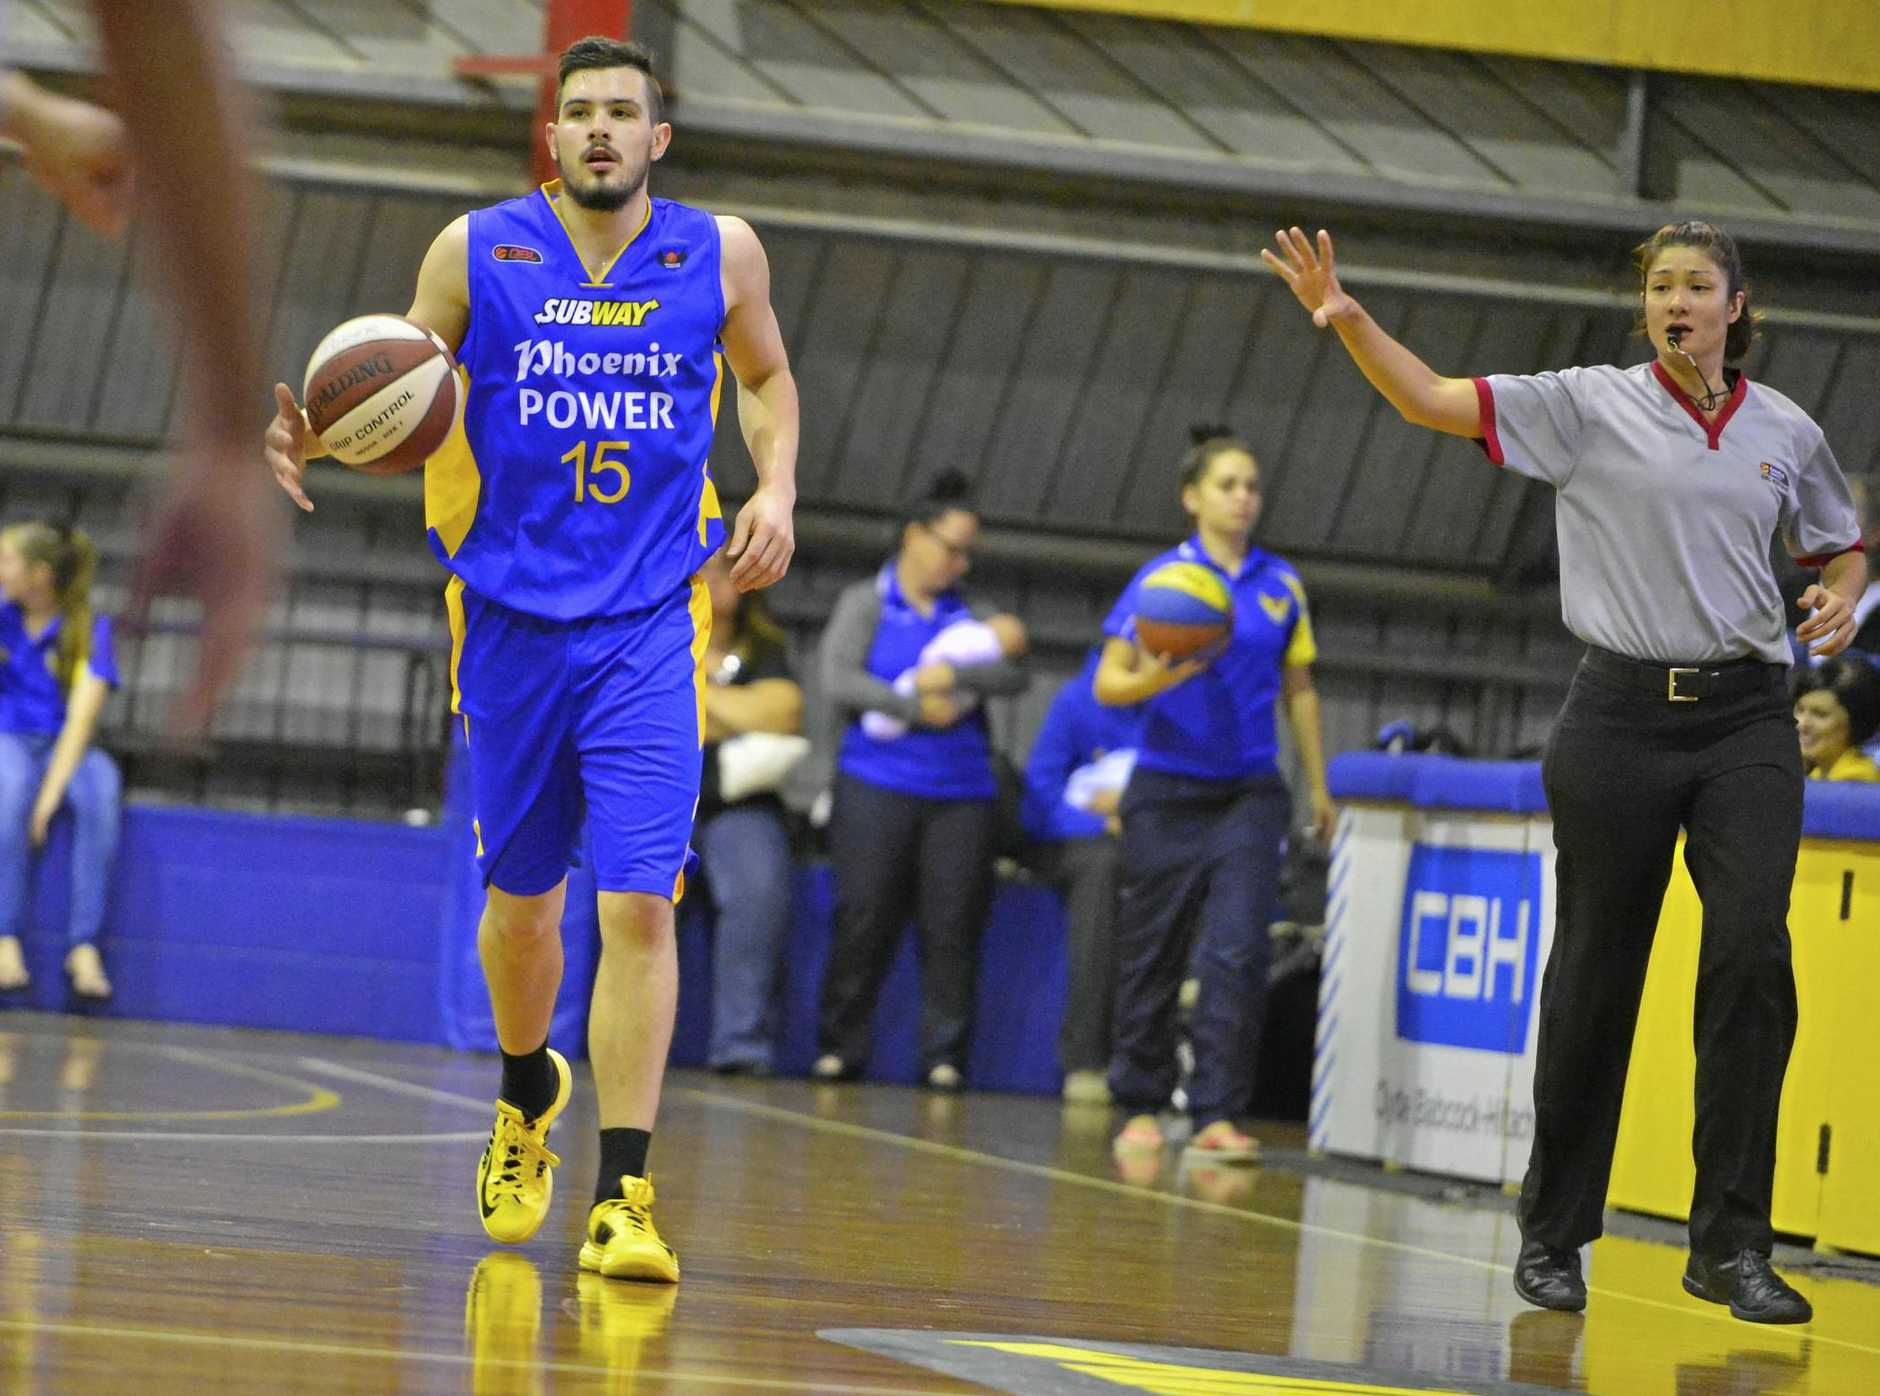 Men's basketball, Phoenix Power vs Townsville Flames at Kev Broome Stadium, Gladstone.  Power's Chris Goulding.  Photo Christopher Chan / The Observer